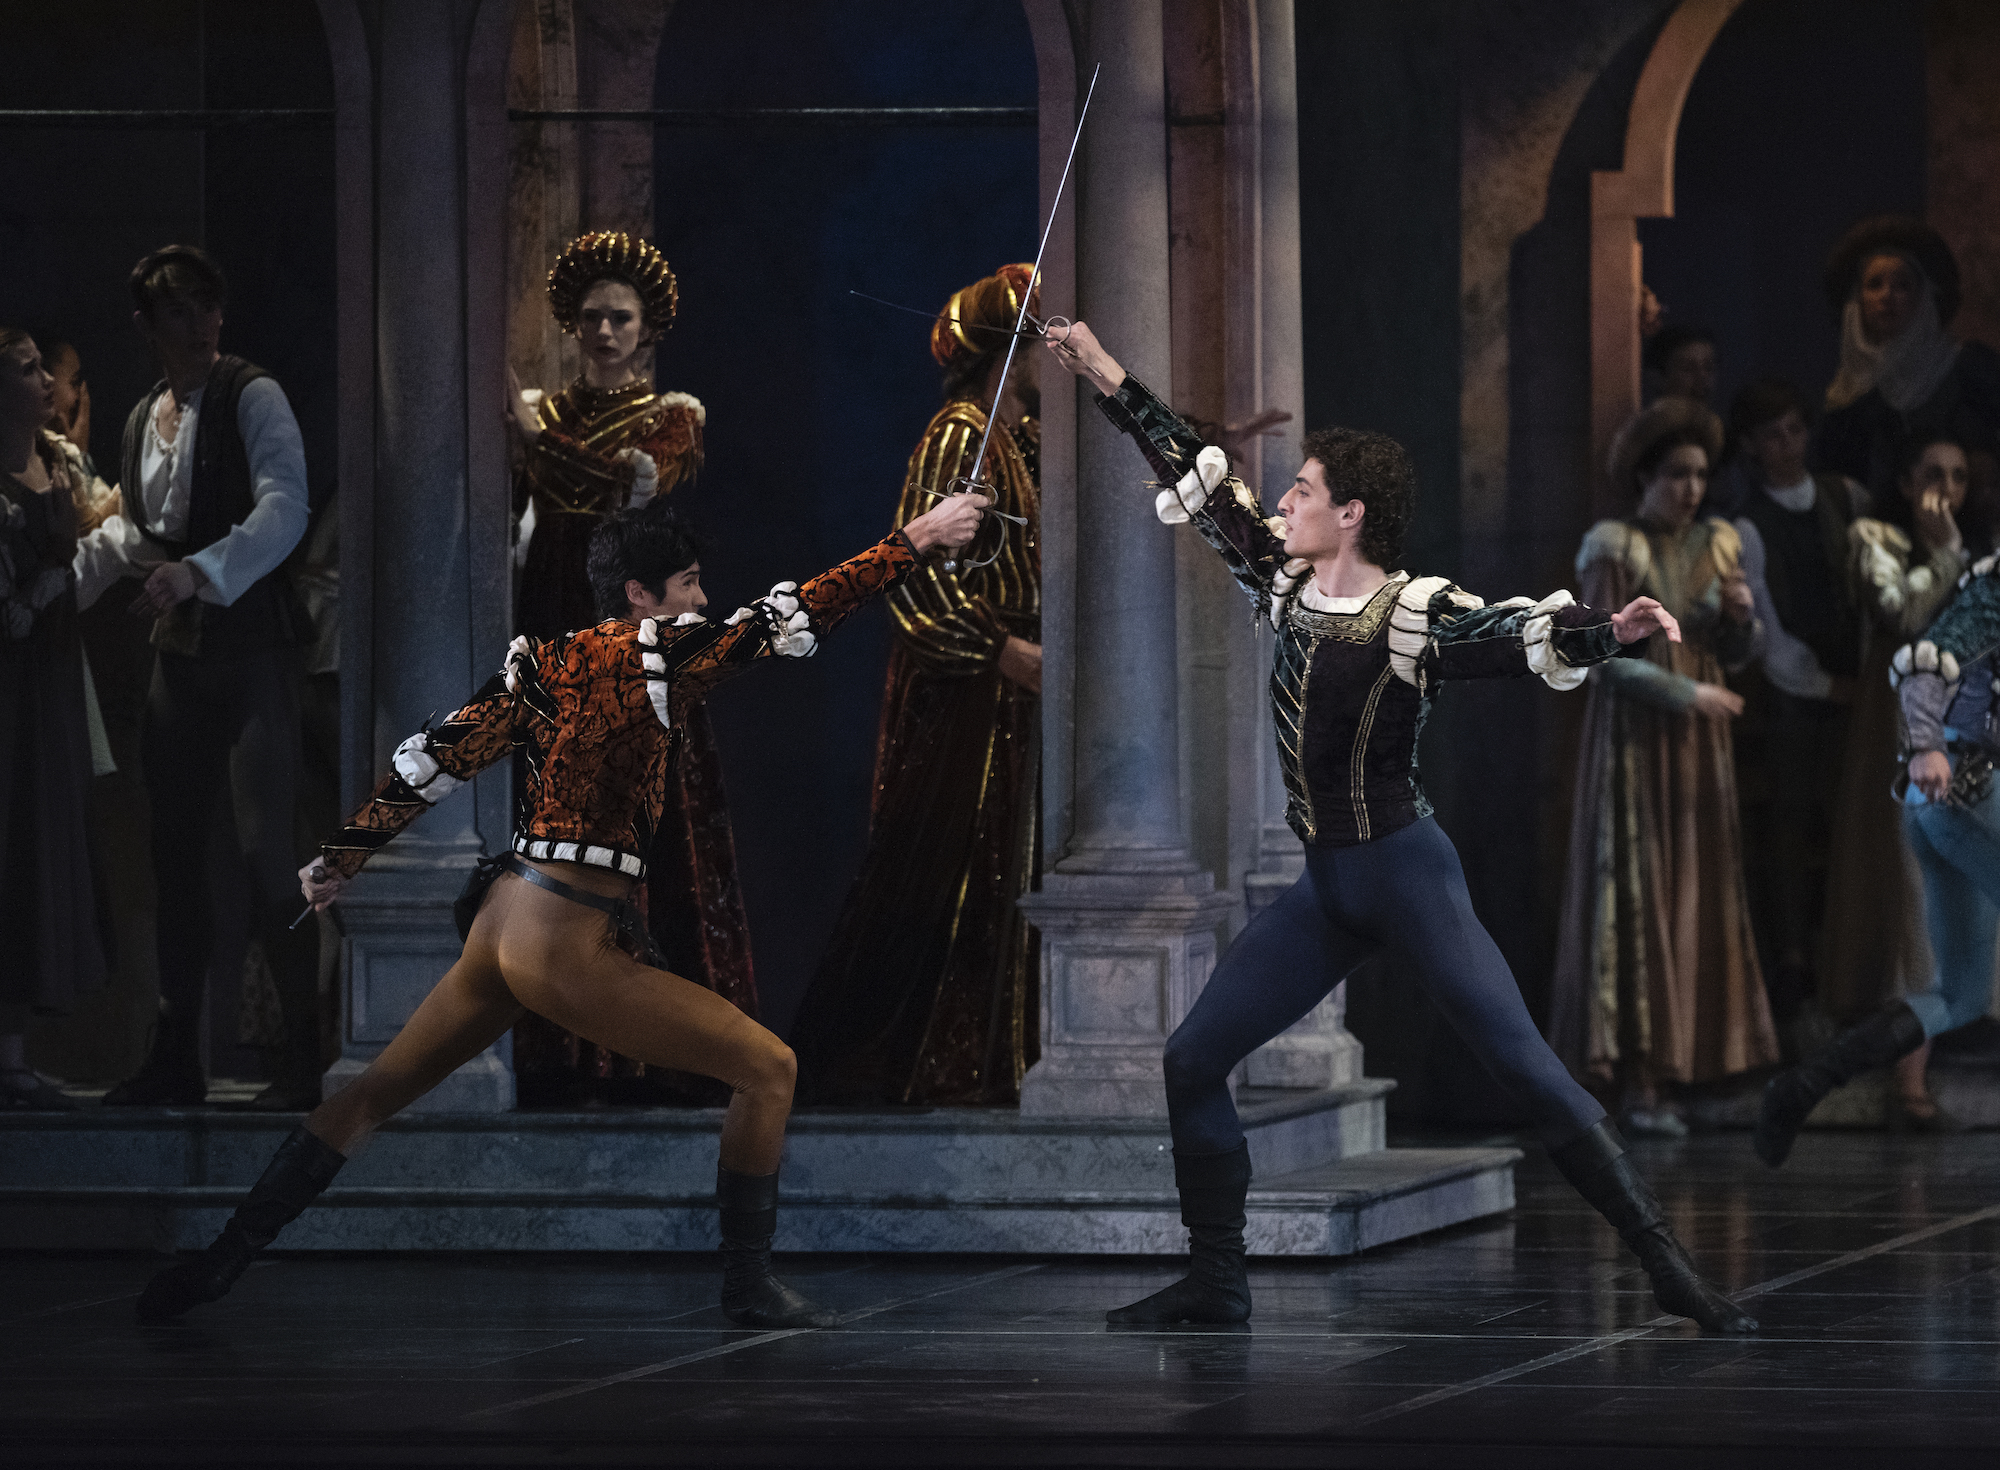 Sean Bennett and Carlo Di Lanno in Tomasson's Romeo & Juliet. (© Erik Tomasson)